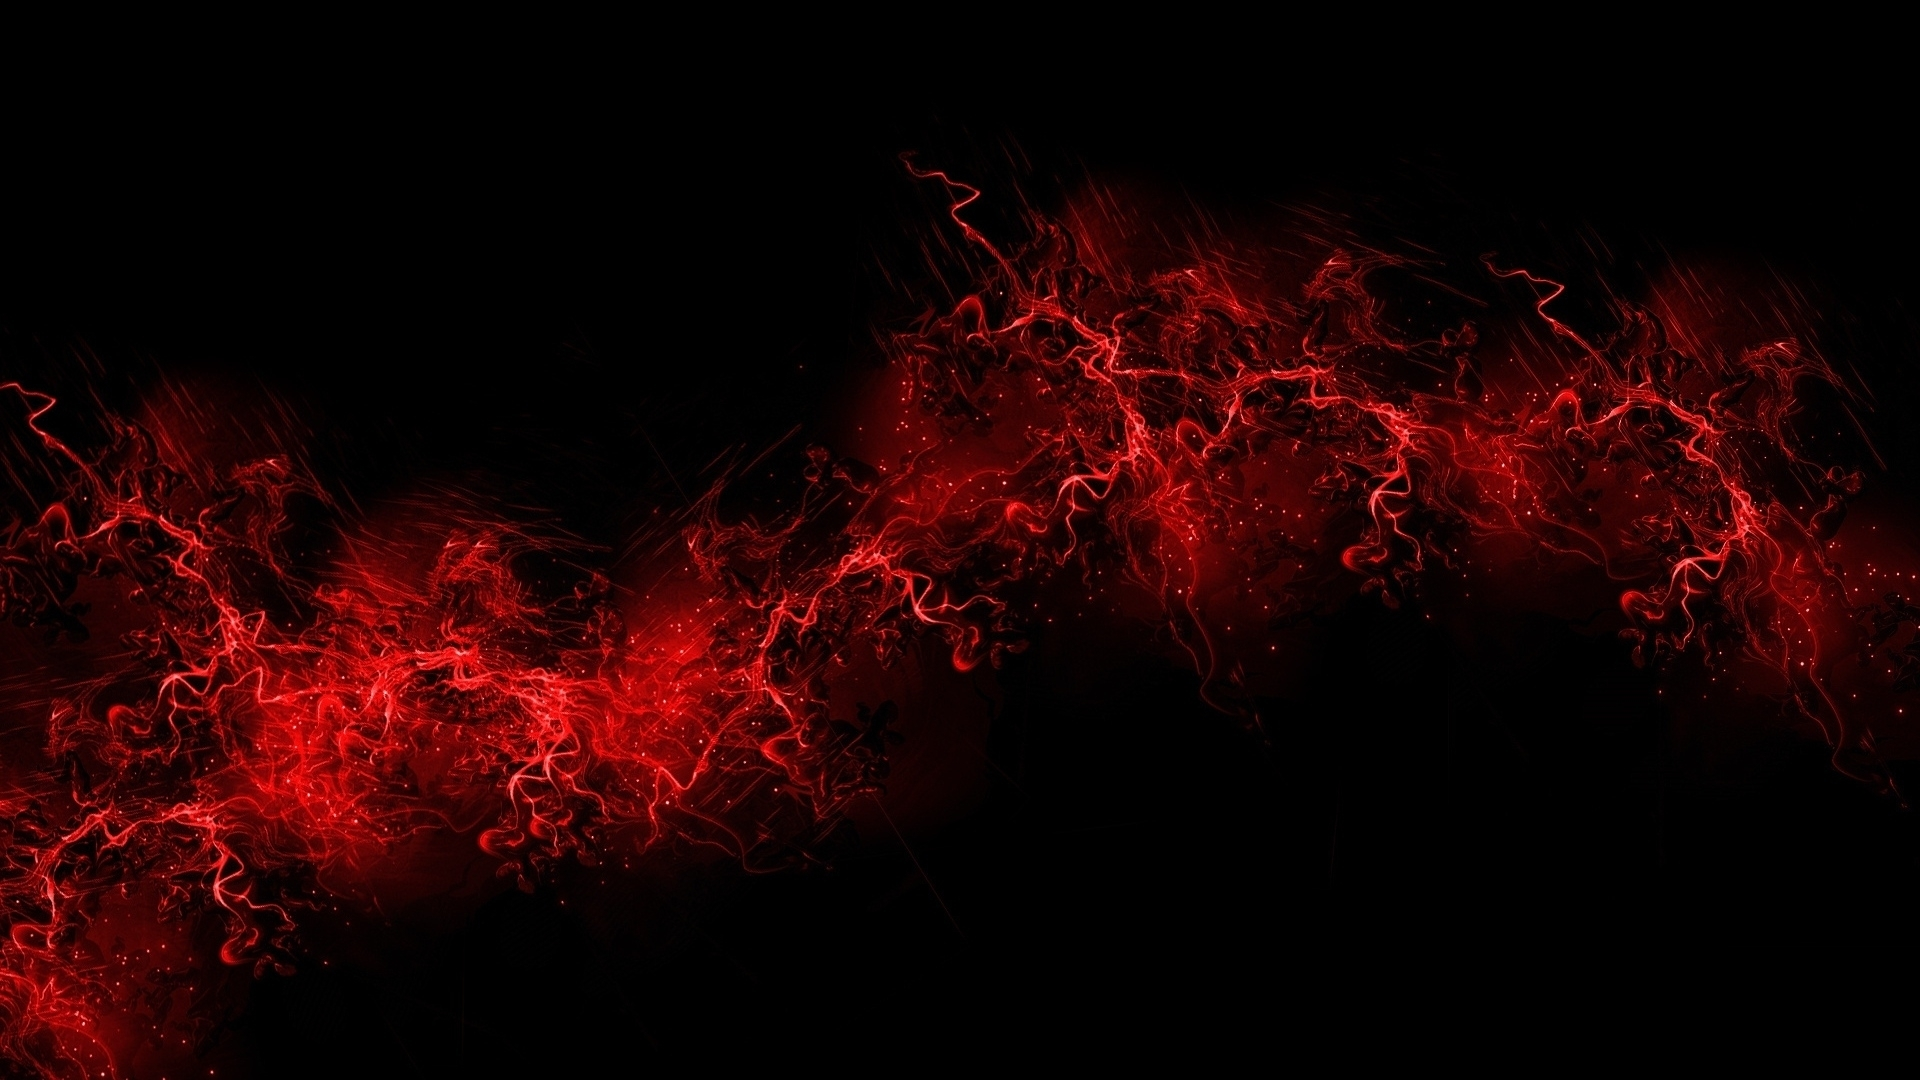 hd background images red and black - full hd 1080p abstract